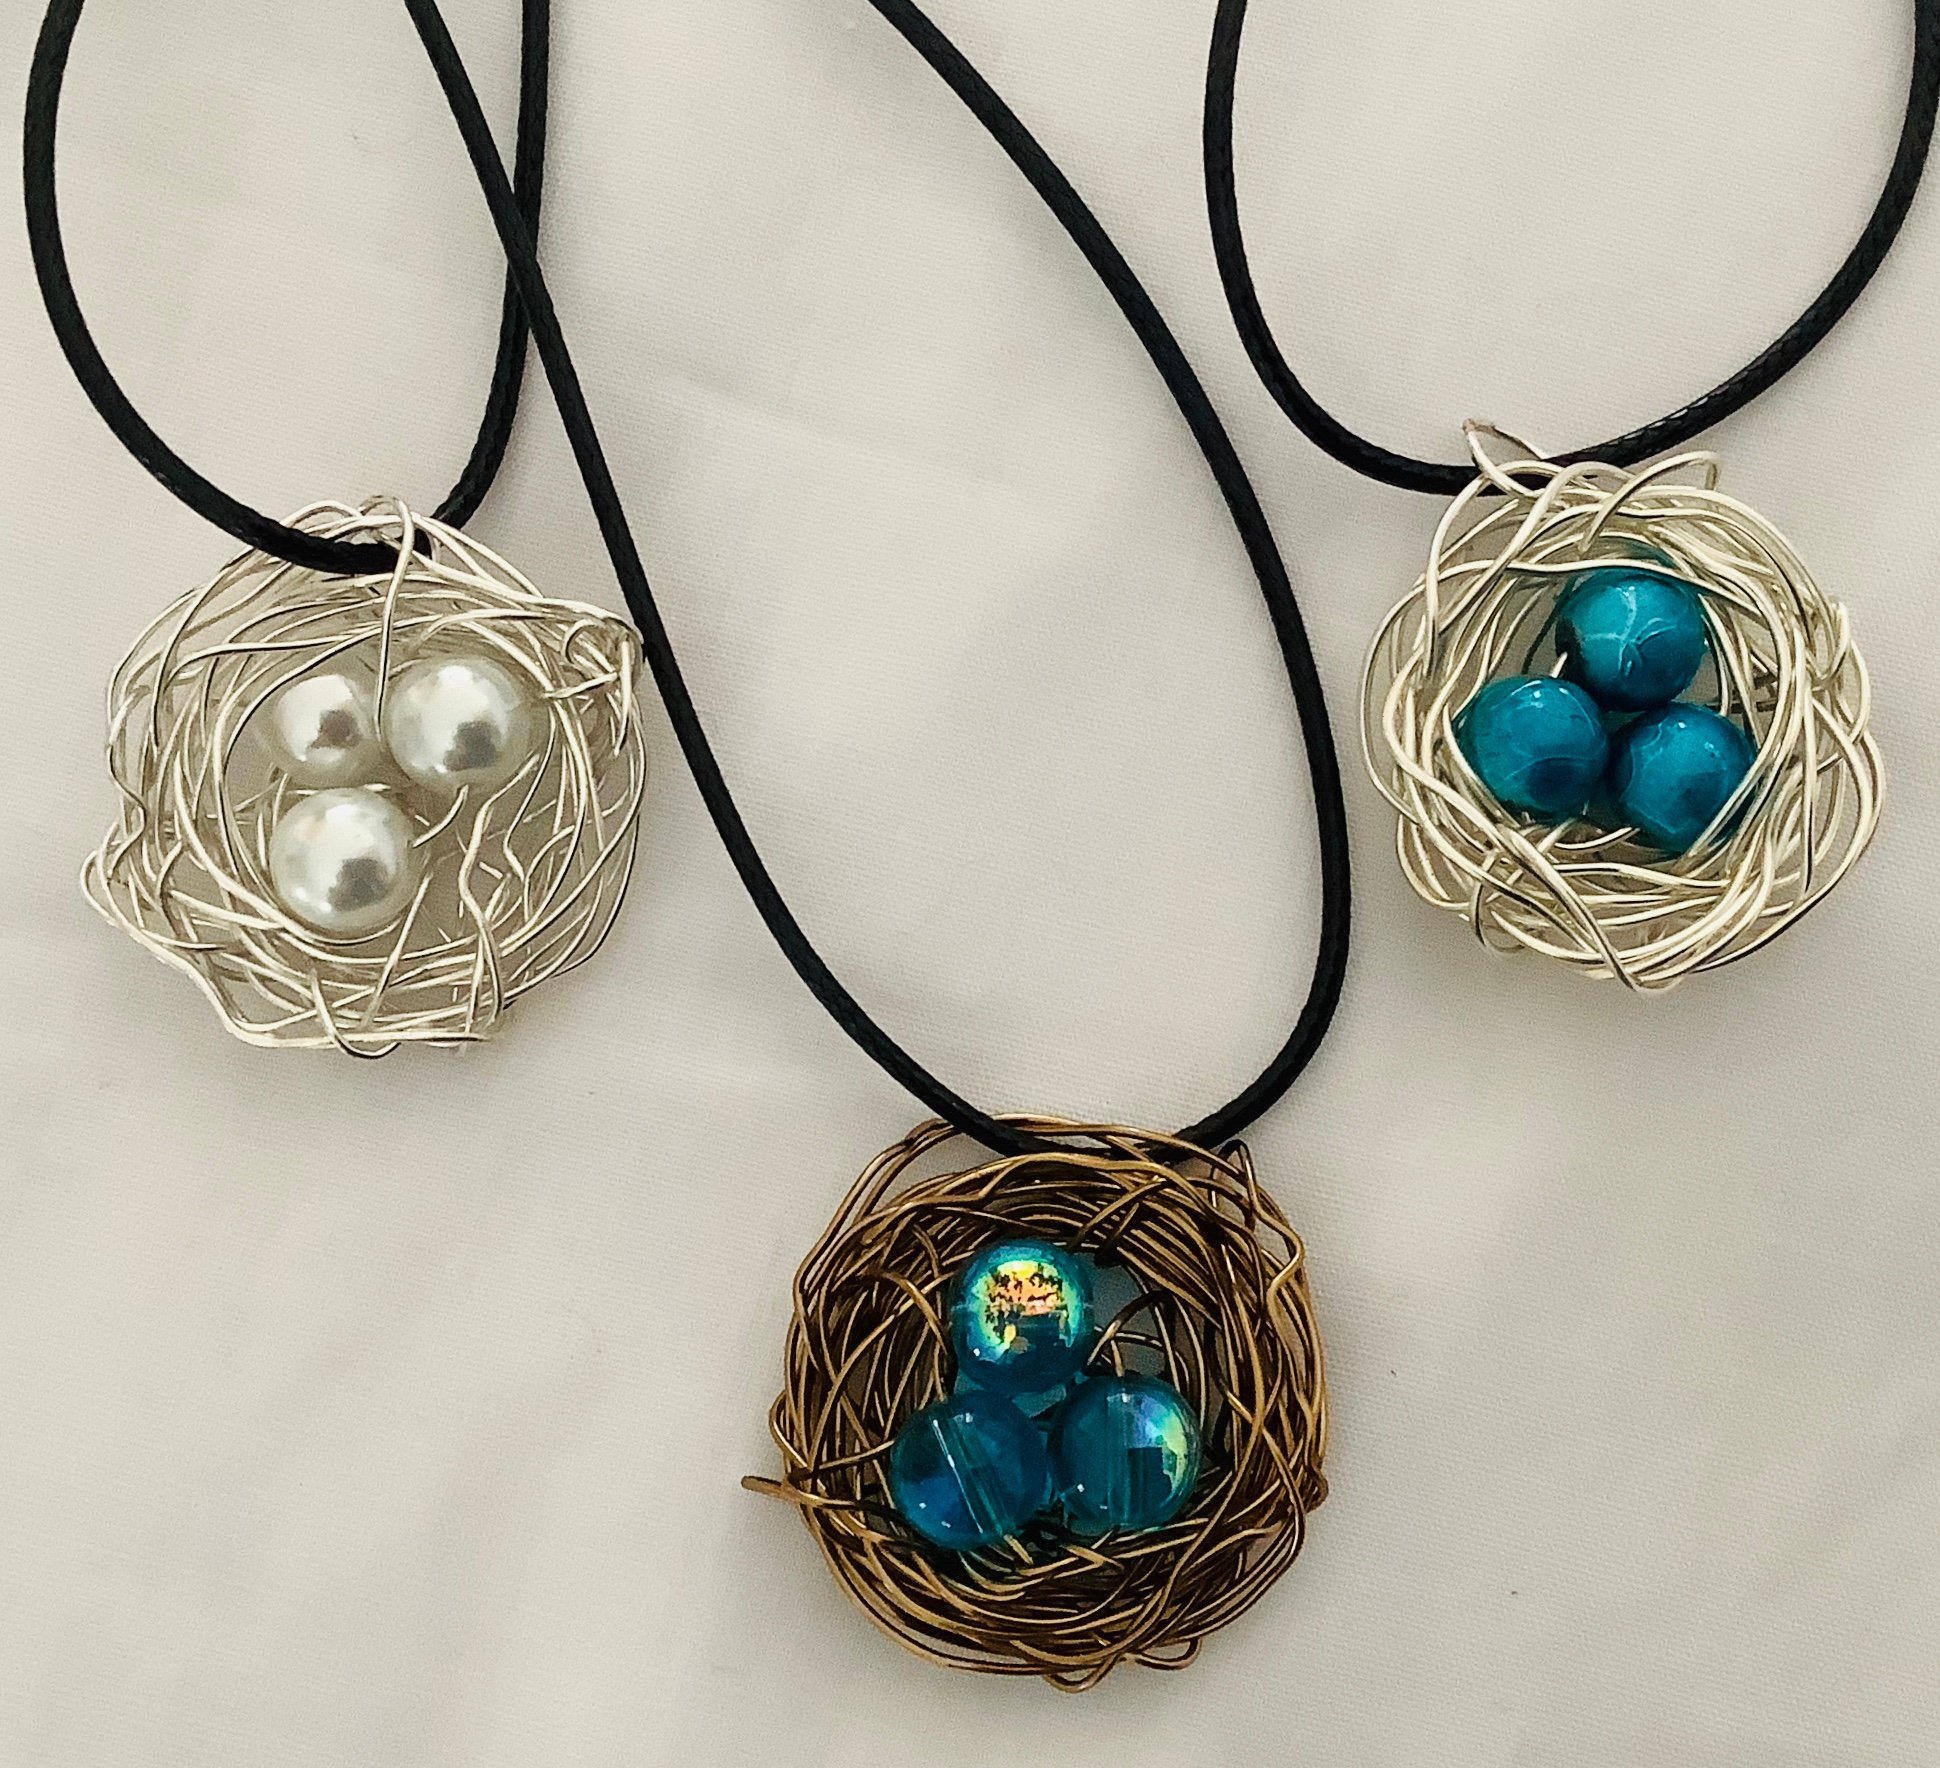 Bird Nest pendants are handwired individually using several types of wire and blue or white bead for the eggs. Any number of eggs can be added to the nest. Some folks have ordered the number of eggs of their family members.   $30.00